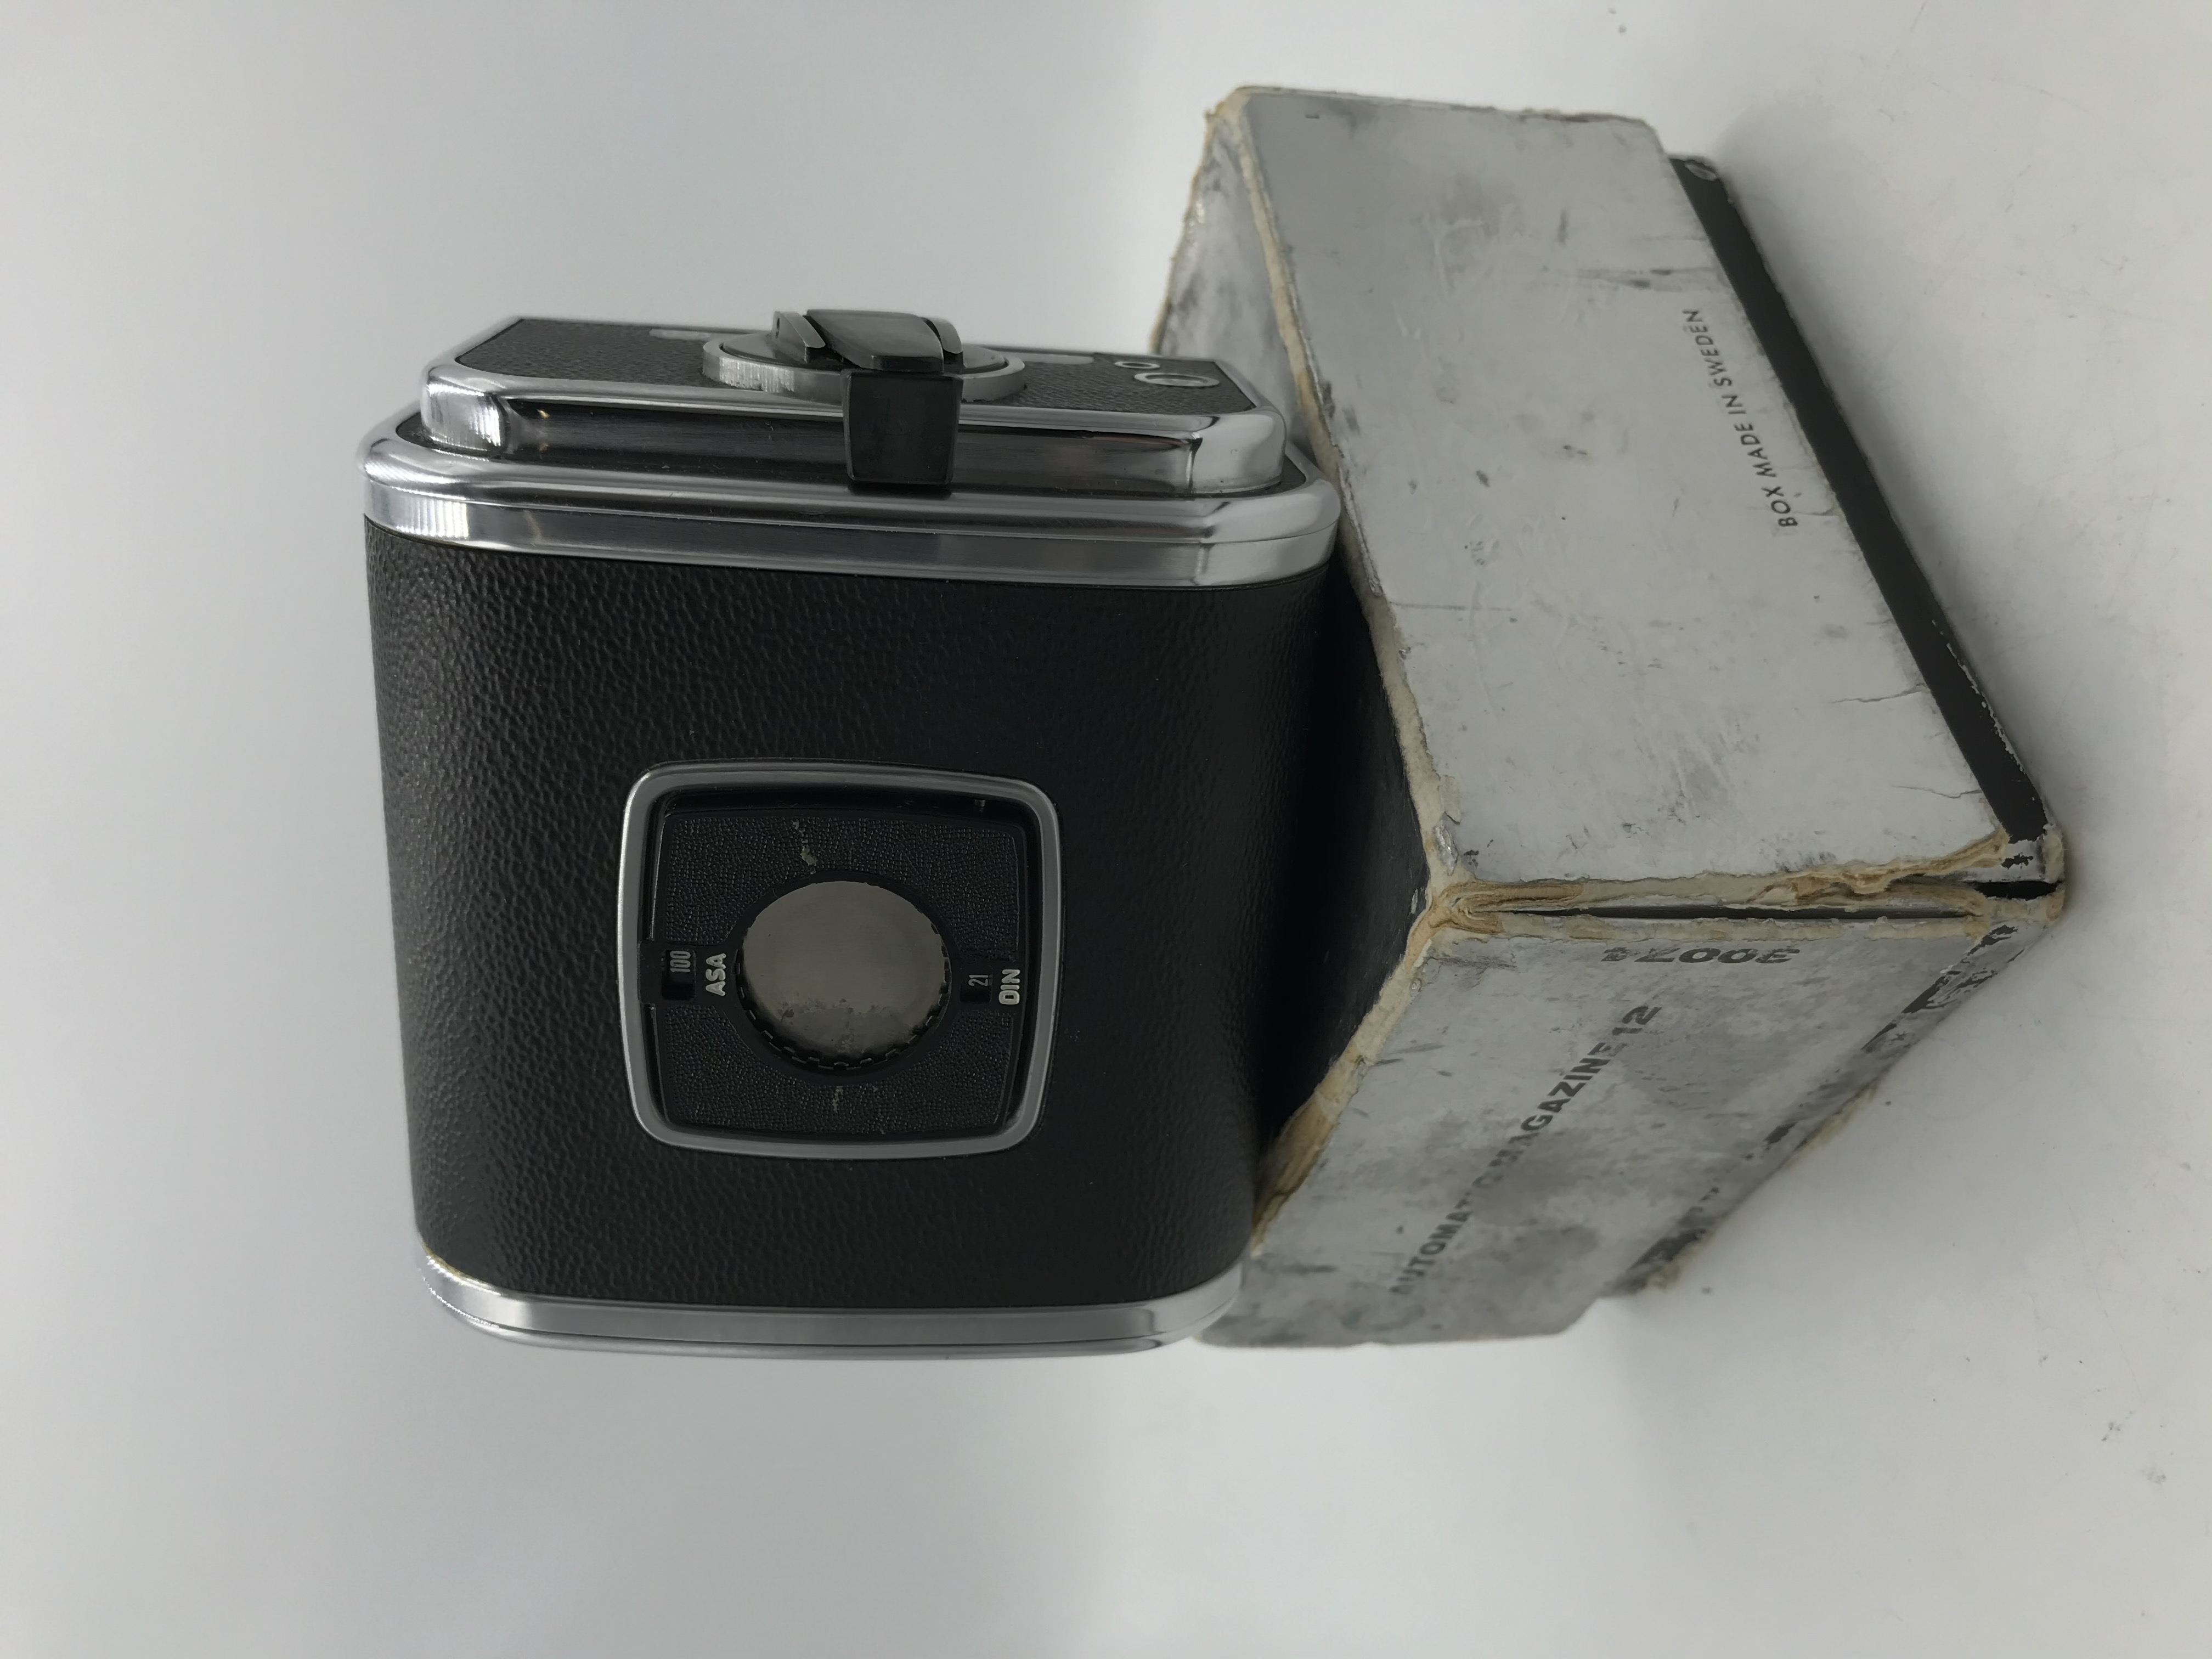 USED Hasselblad A12 120 Film Back (Chrome) - Matching Serial Numbers